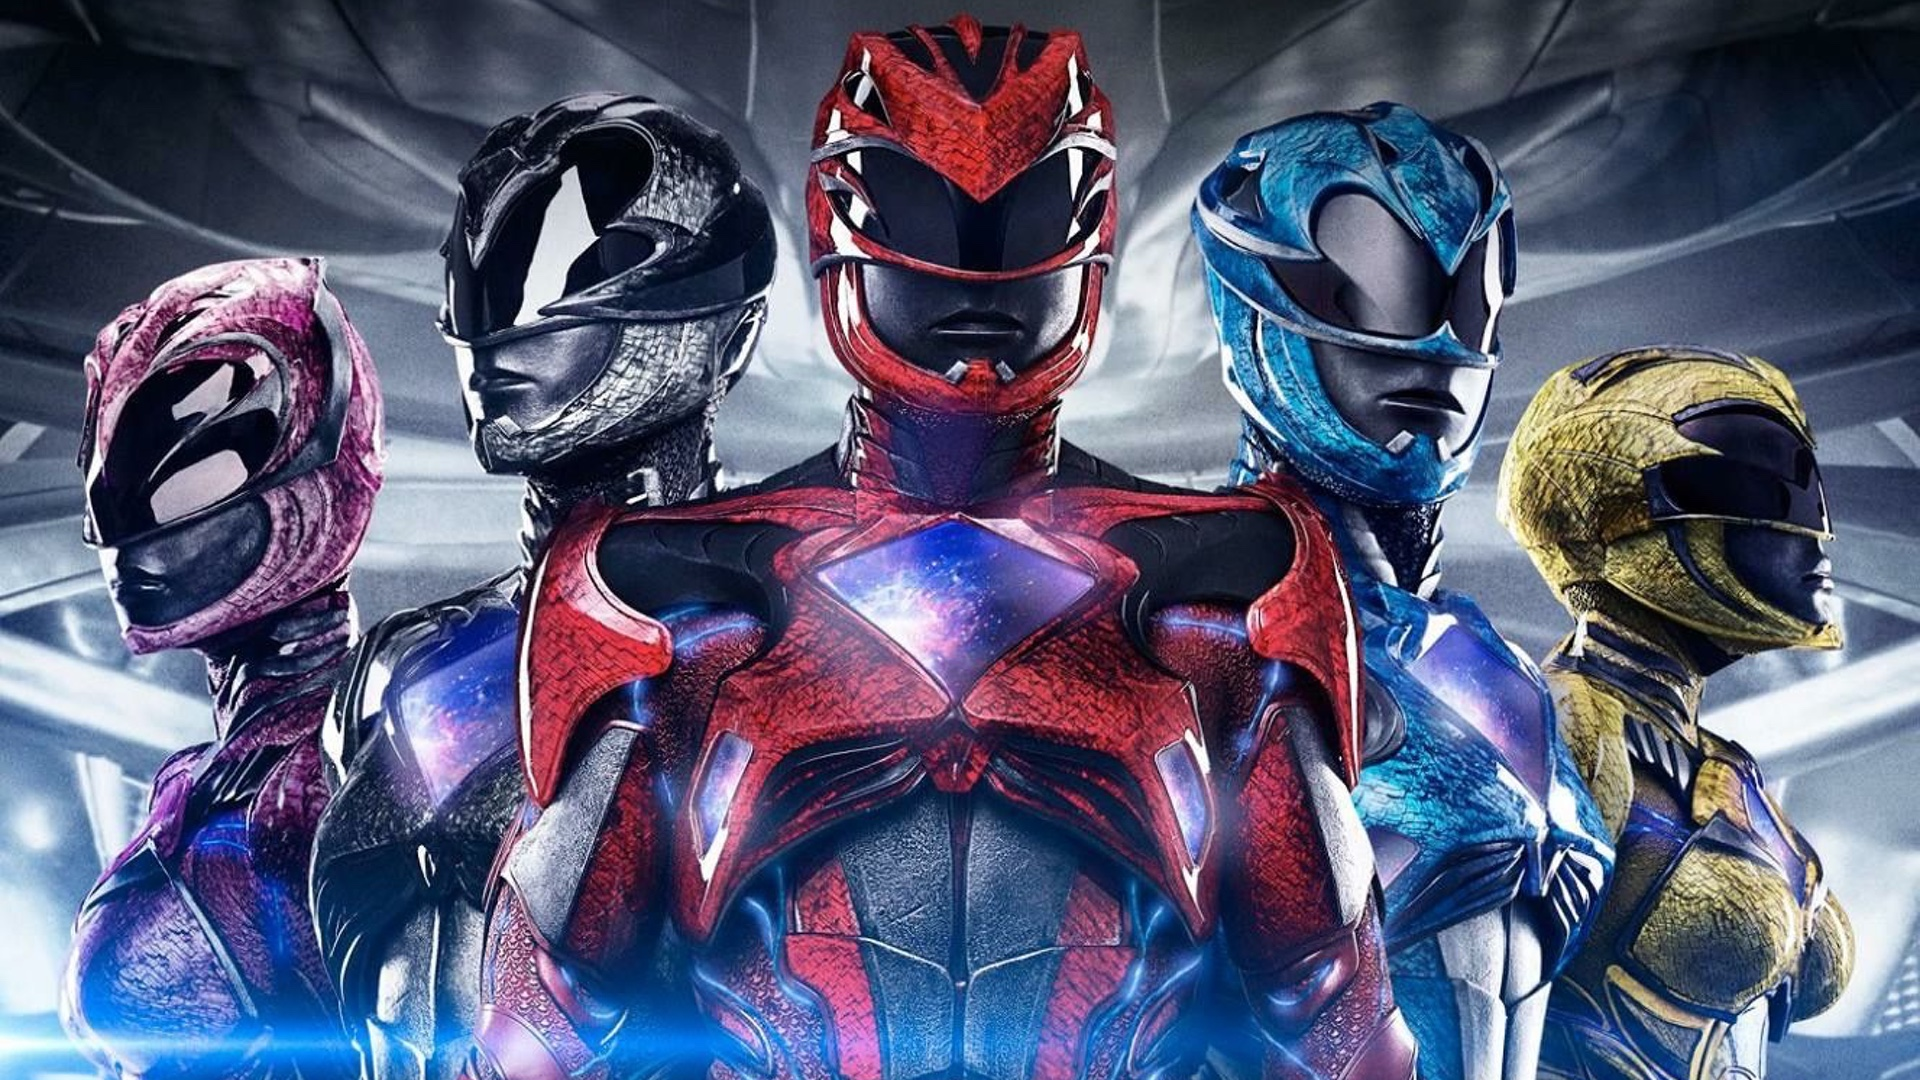 Rumors Have Been Abound For The Past Week That A Sequel To Power Rangers Film Is Going Happen And Hasbro Currently Has Allspark Pictures